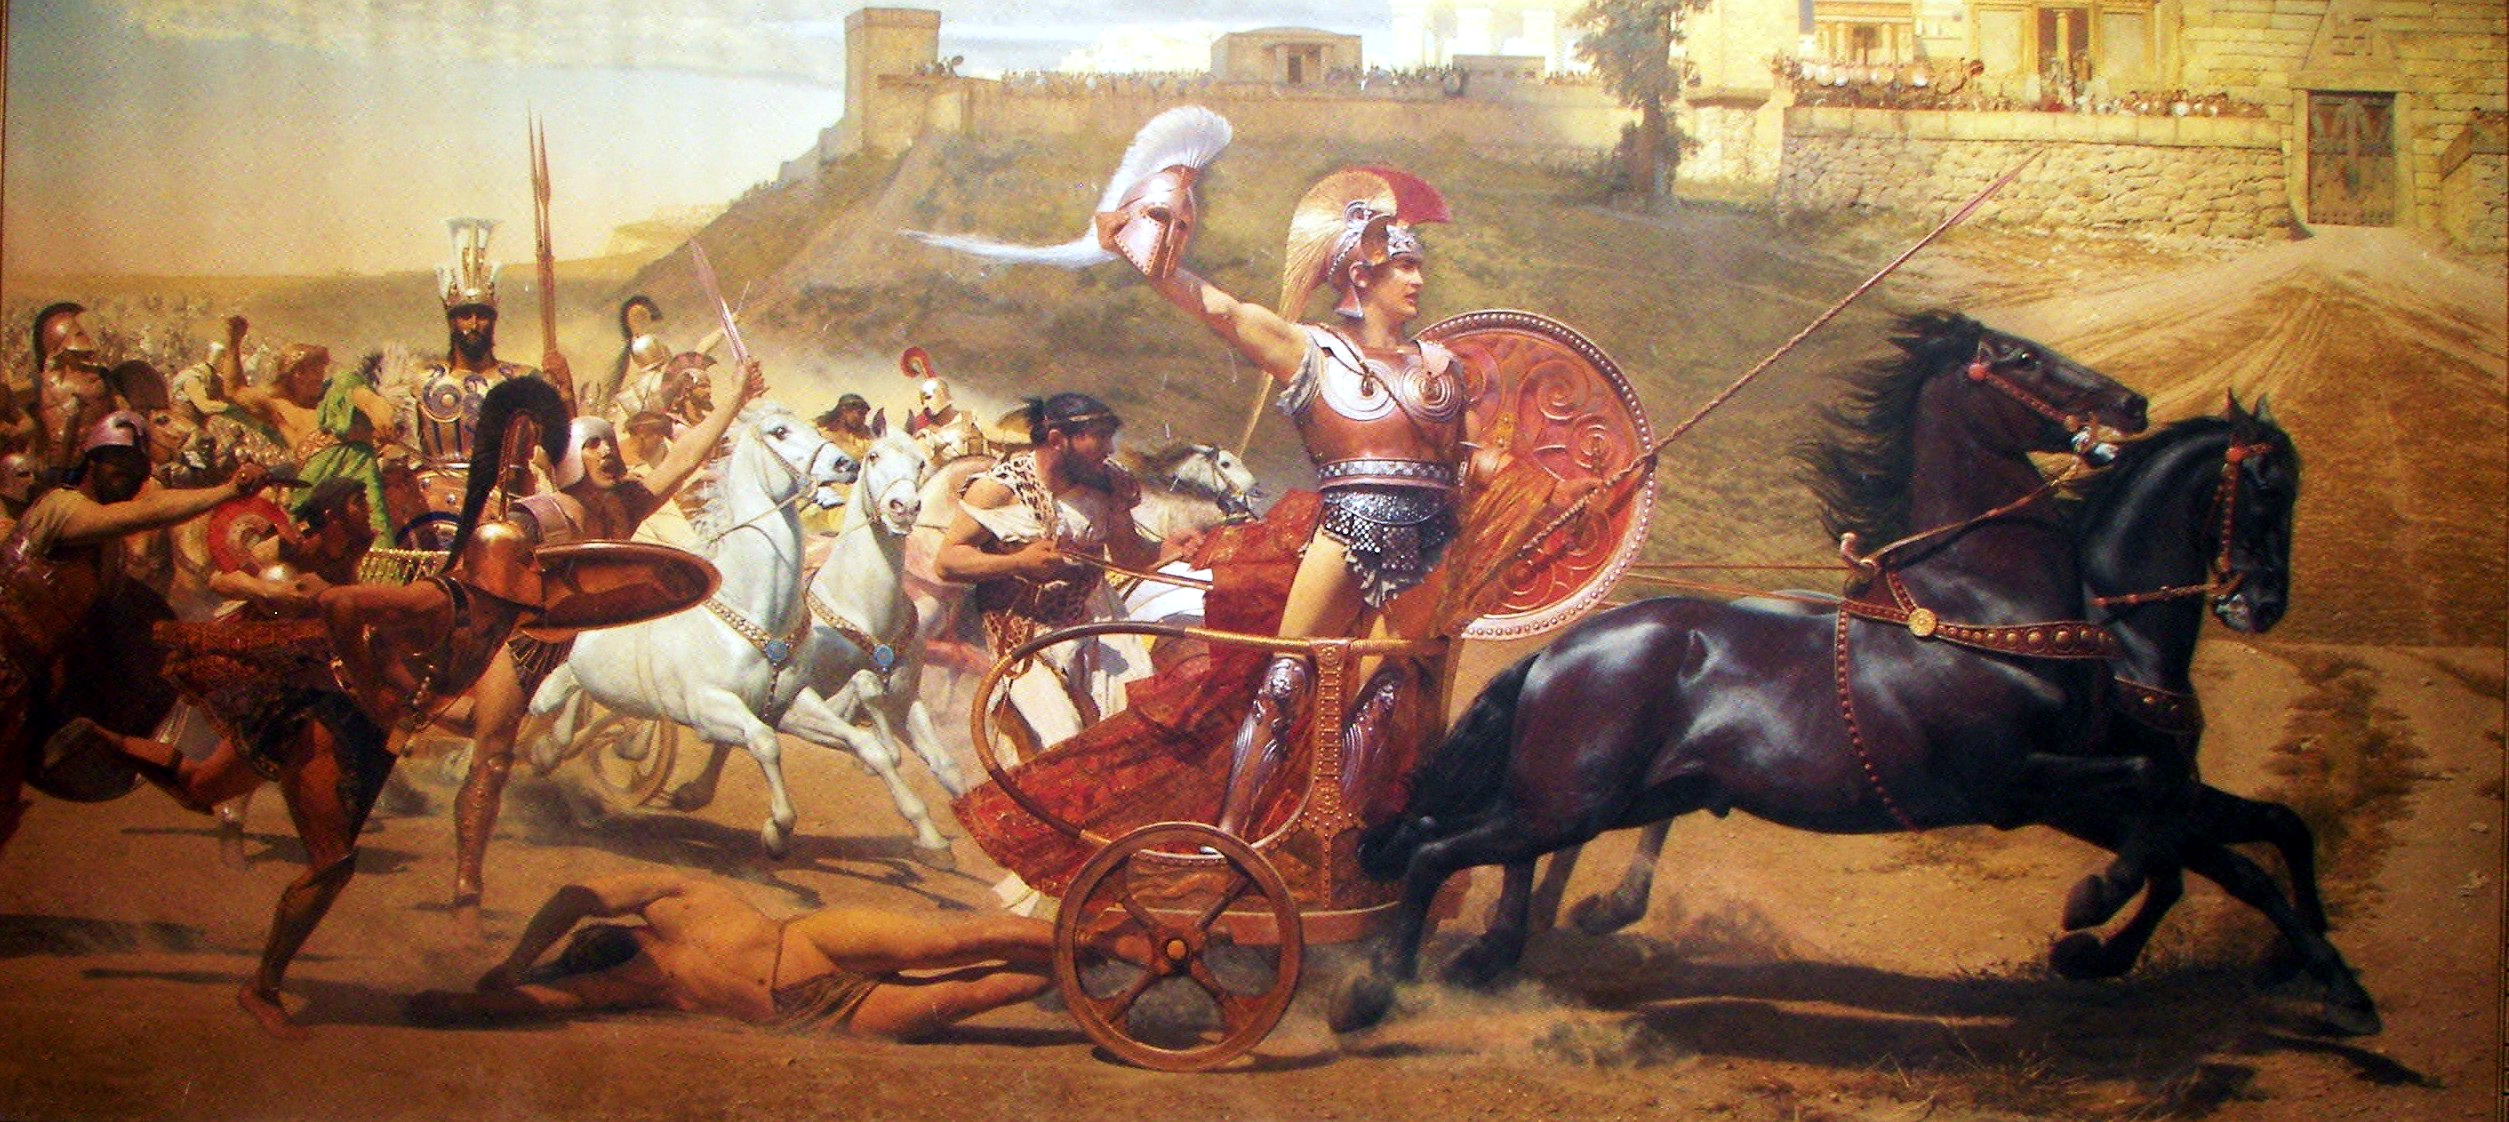 The Top 5 Greek Mythological Heroes